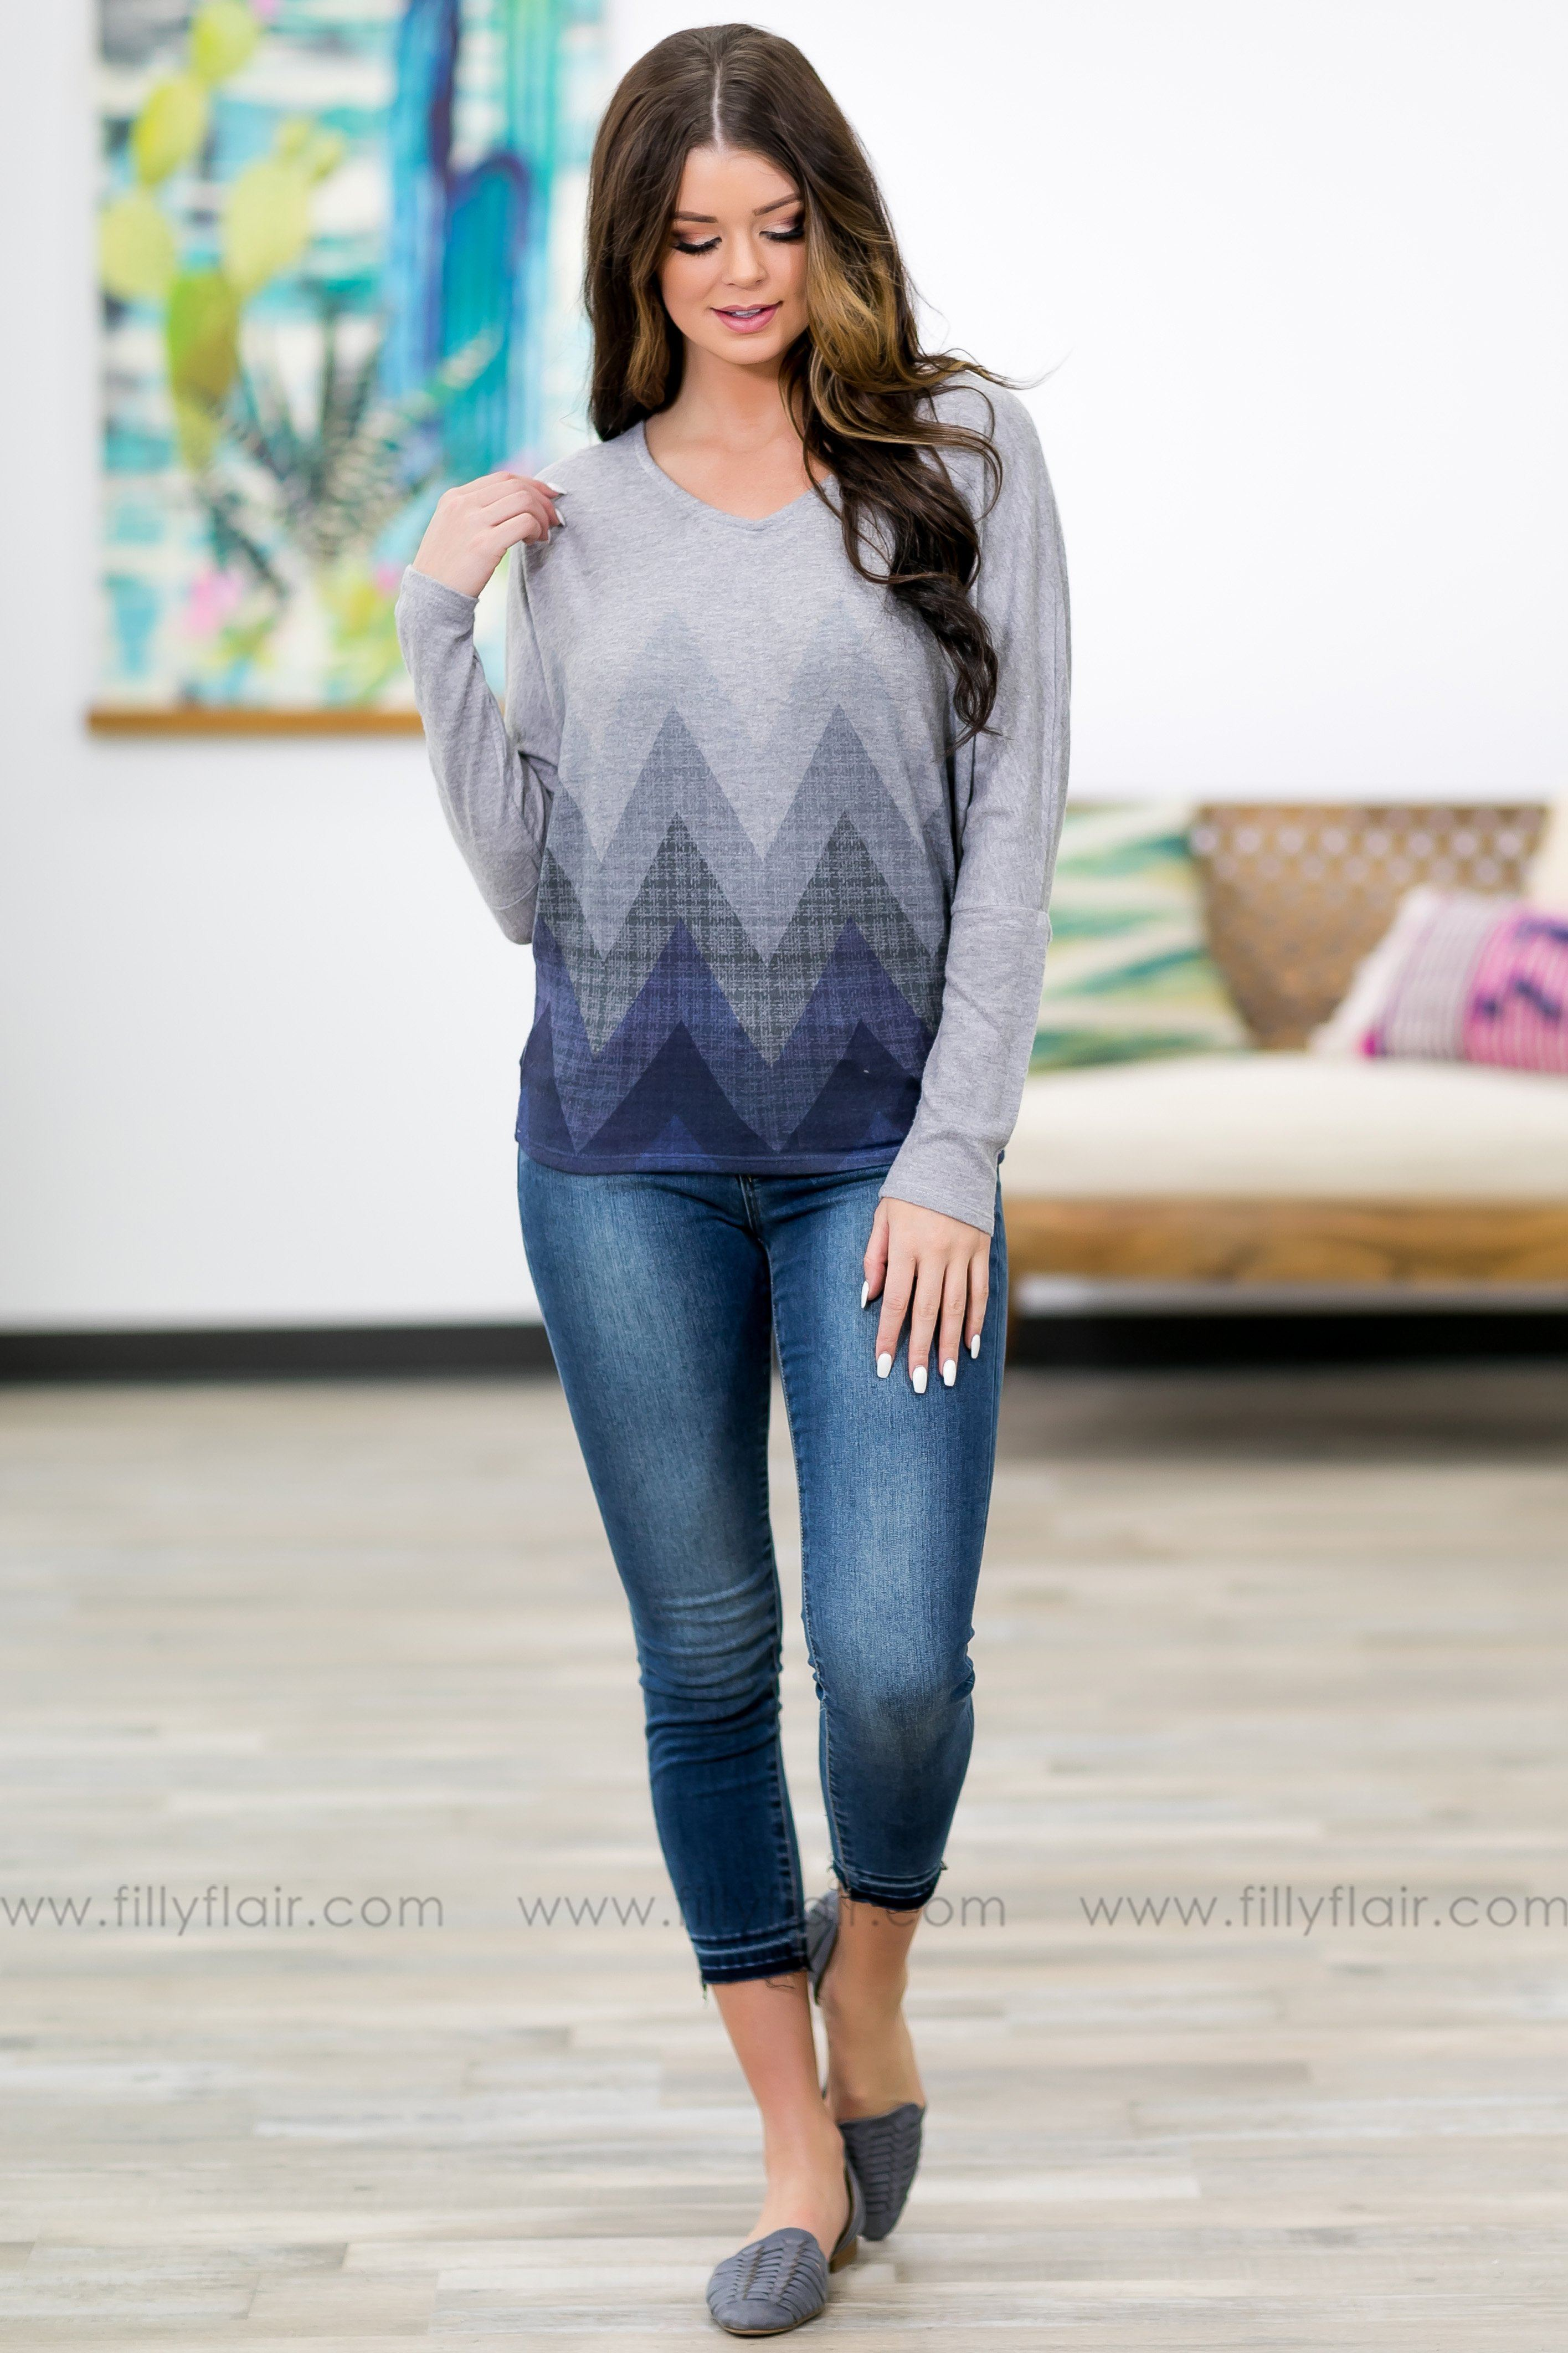 Seems To Me Navy Chevron Cross Back Dolman Top in Grey - Filly Flair